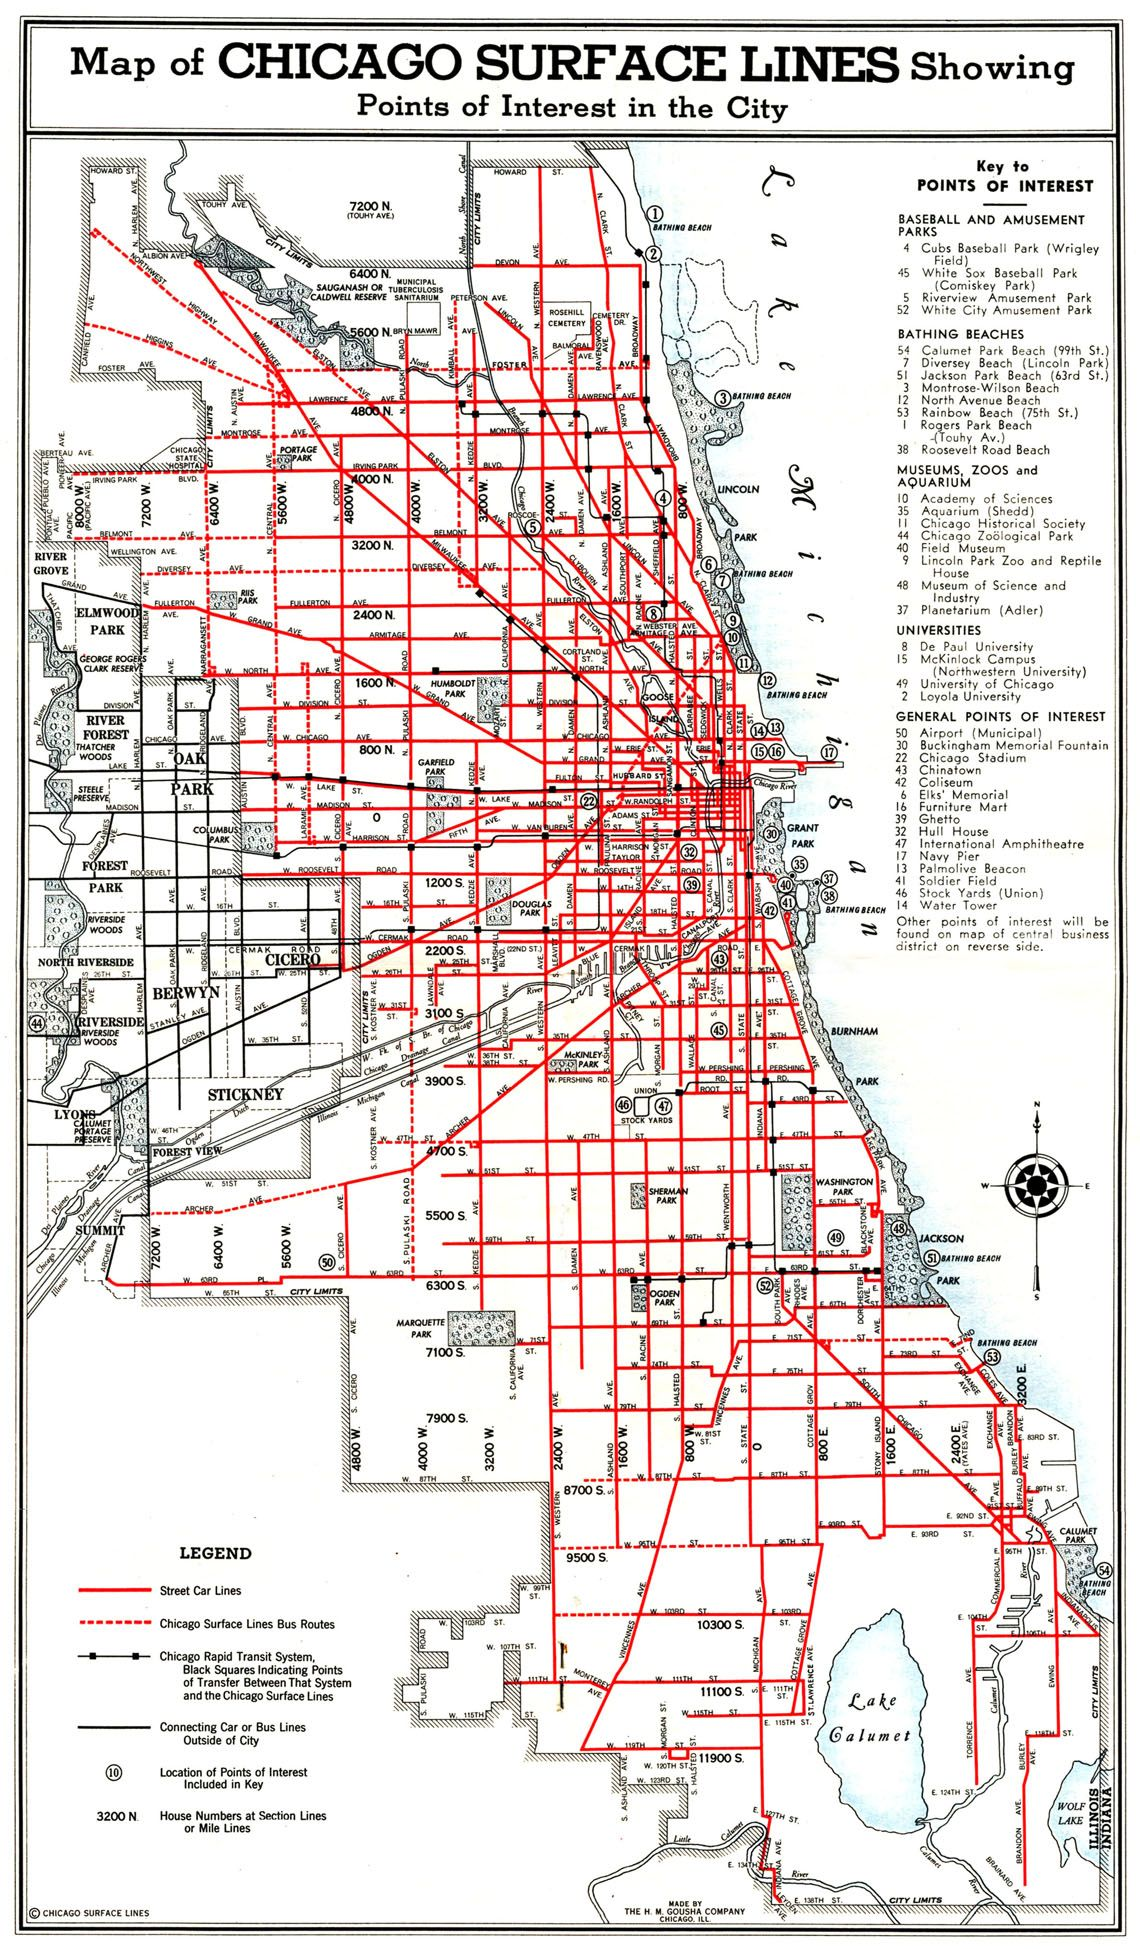 Chicago Surface Linesstreetcars And Trolley Buses Chicago - Chicago map miracle mile